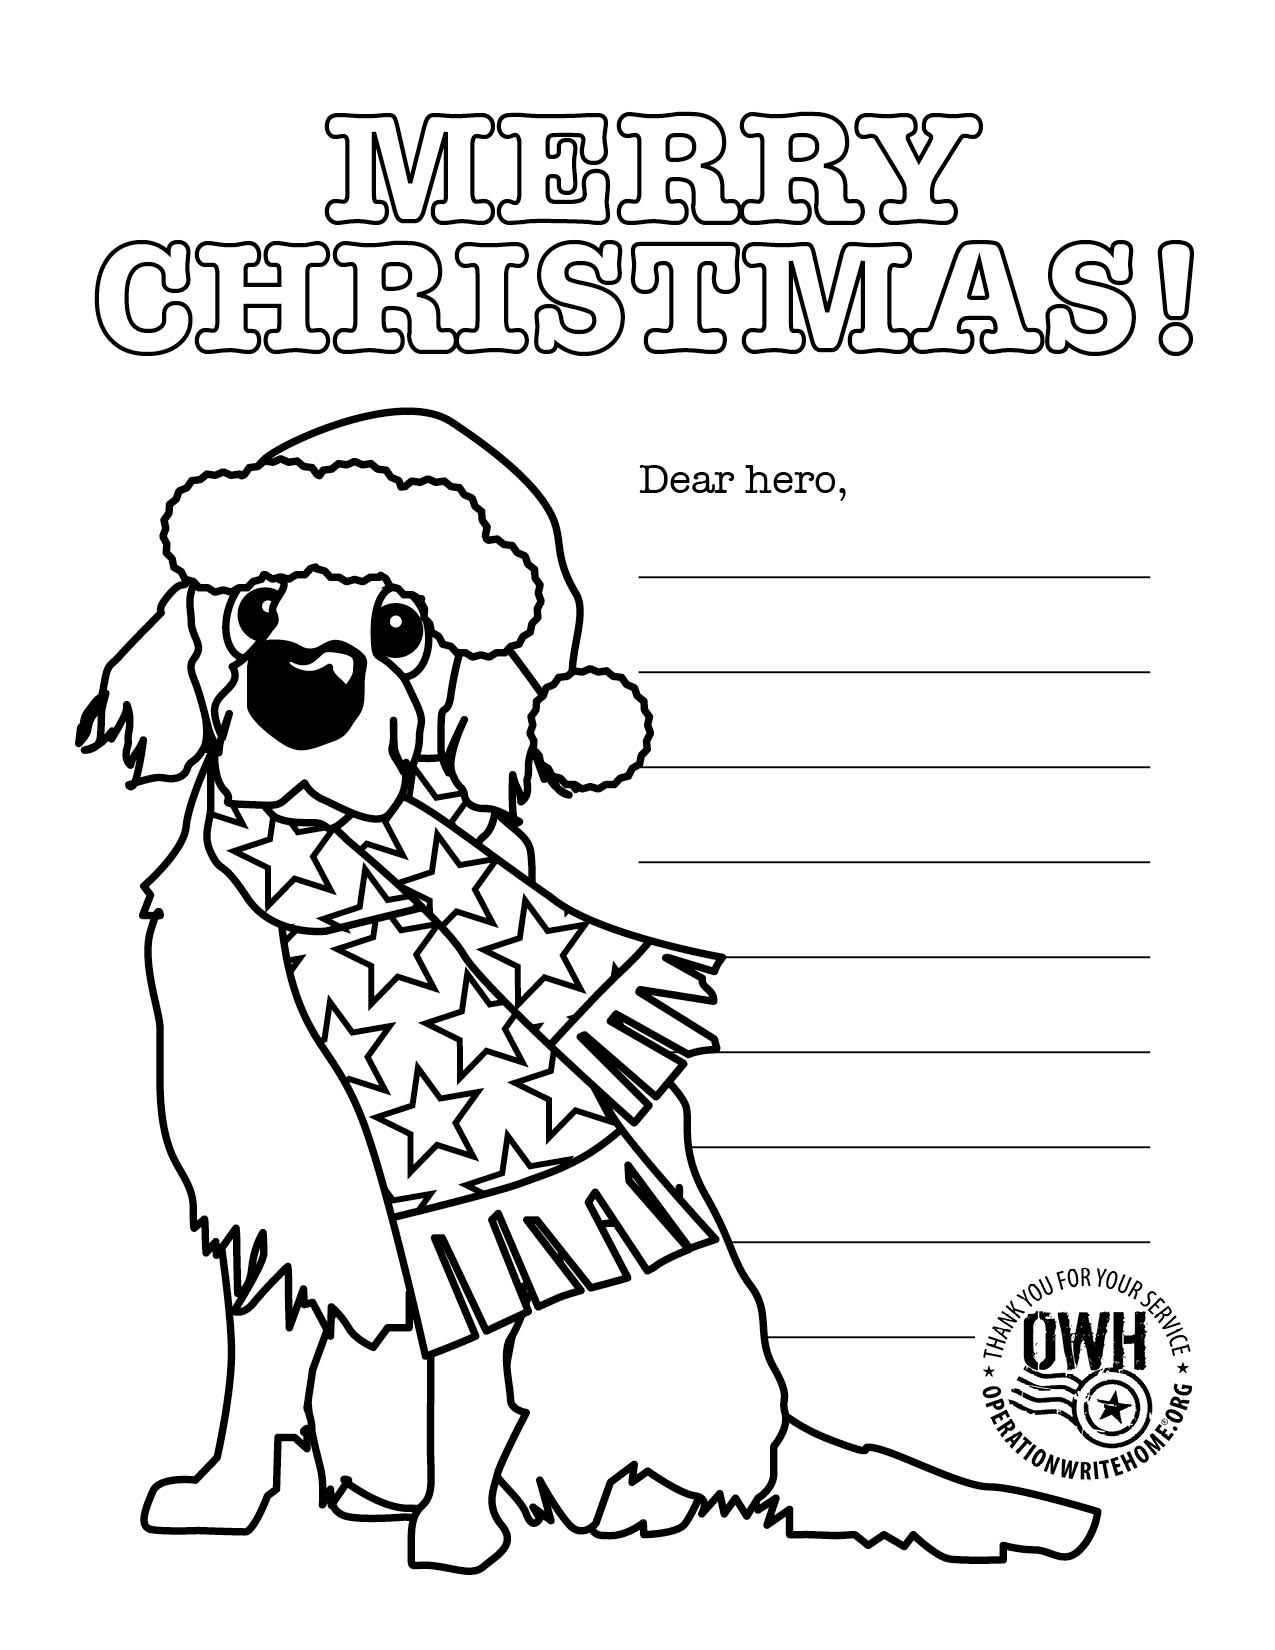 Coloring pages operation write home children can complete these they can be sent to operation write home and then they will be sent to military who are